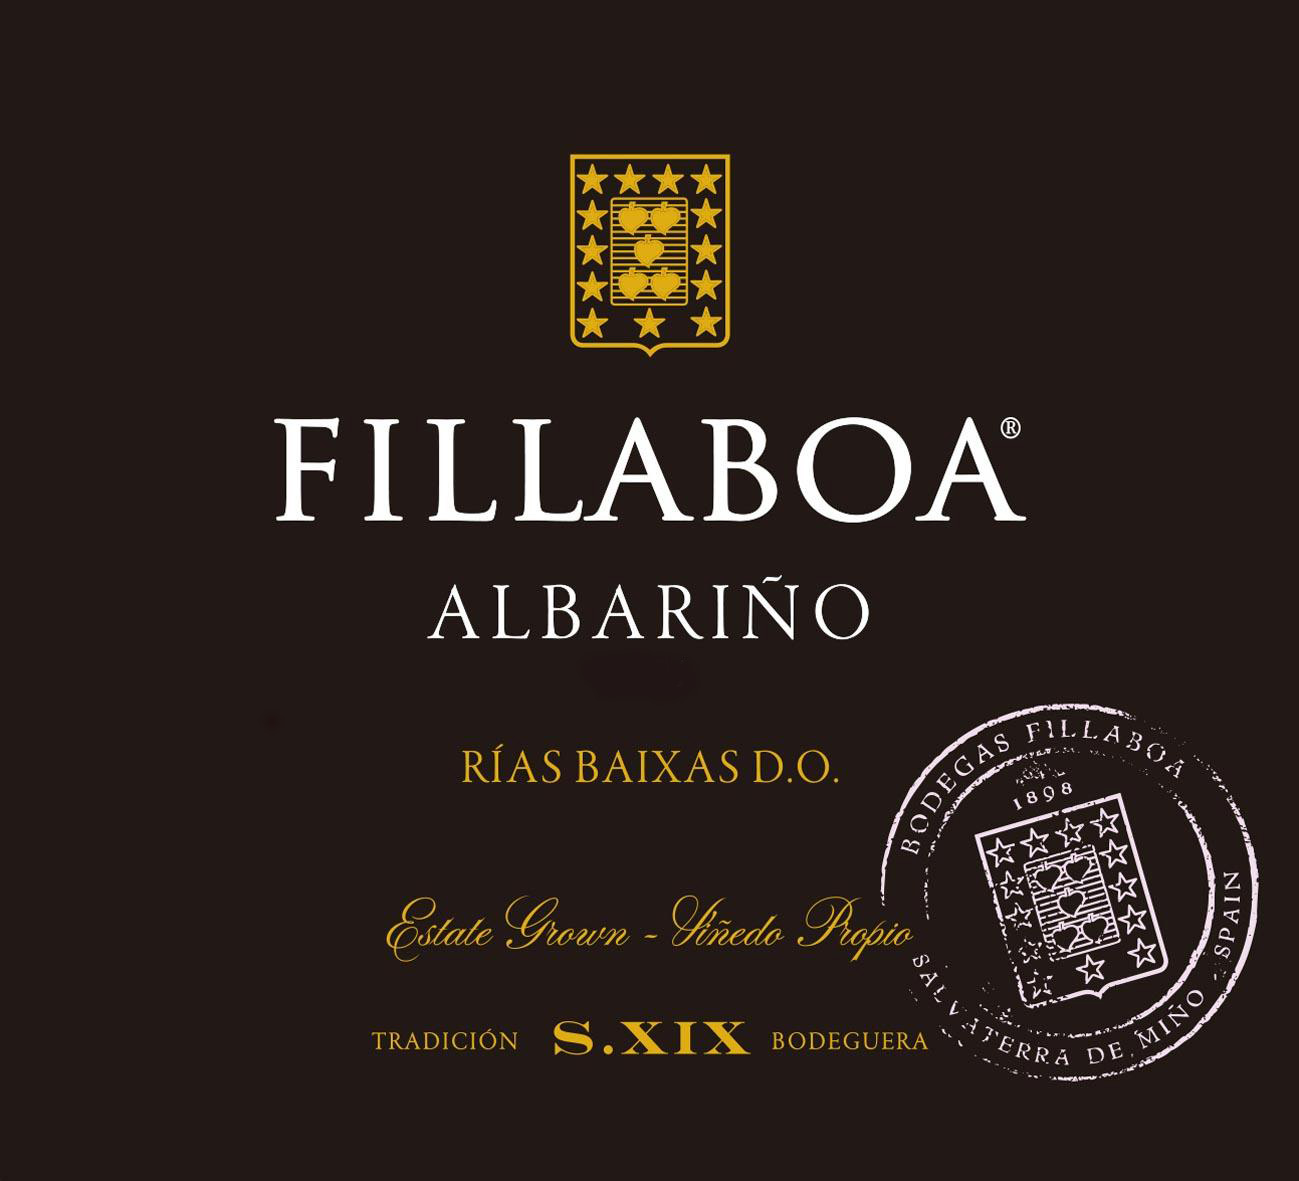 Fillaboa - Albarino label